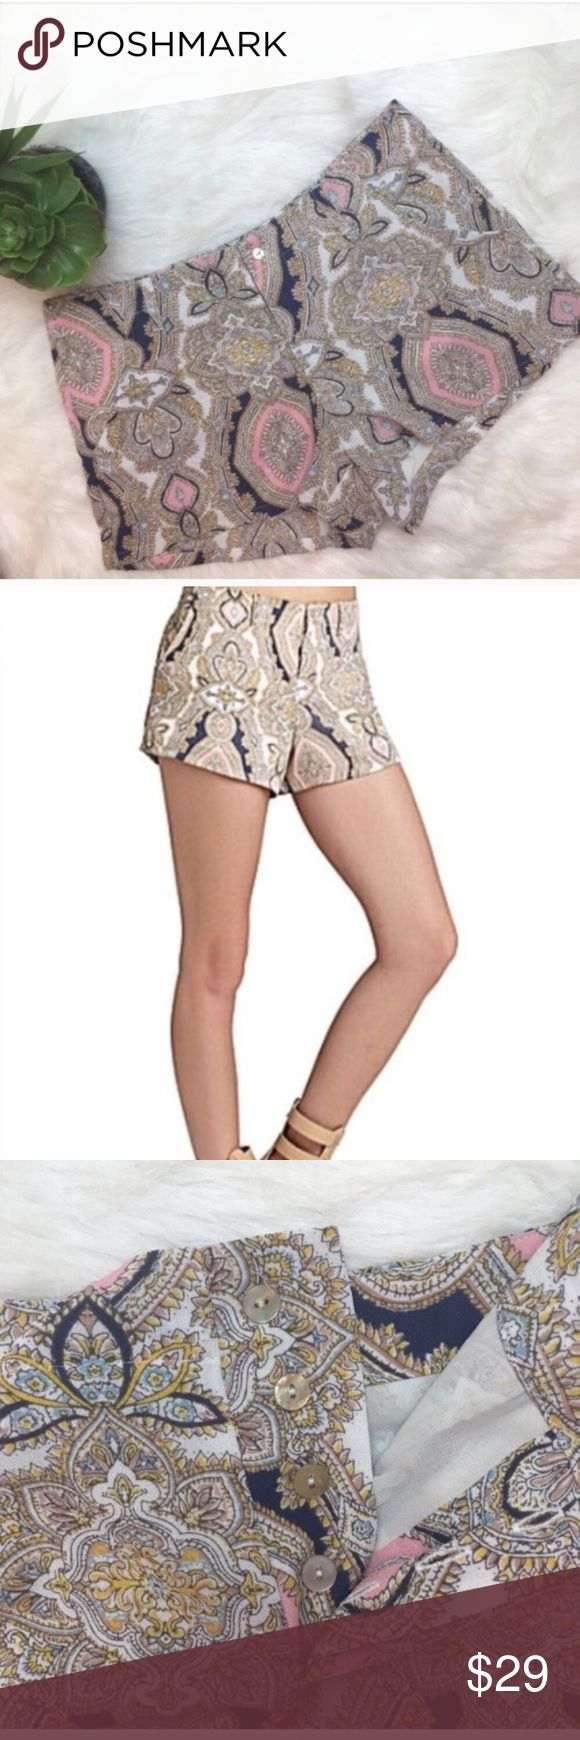 """BCBGENERATION Multicolored Paisley Shorts Pink yellow and navy paisley BCBGeneration shorts. Front pockets with row of hidden buttons. Cream lining inside. Waist 32""""  Inseam 2 6/8"""". In great condition! BCBGeneration Shorts"""